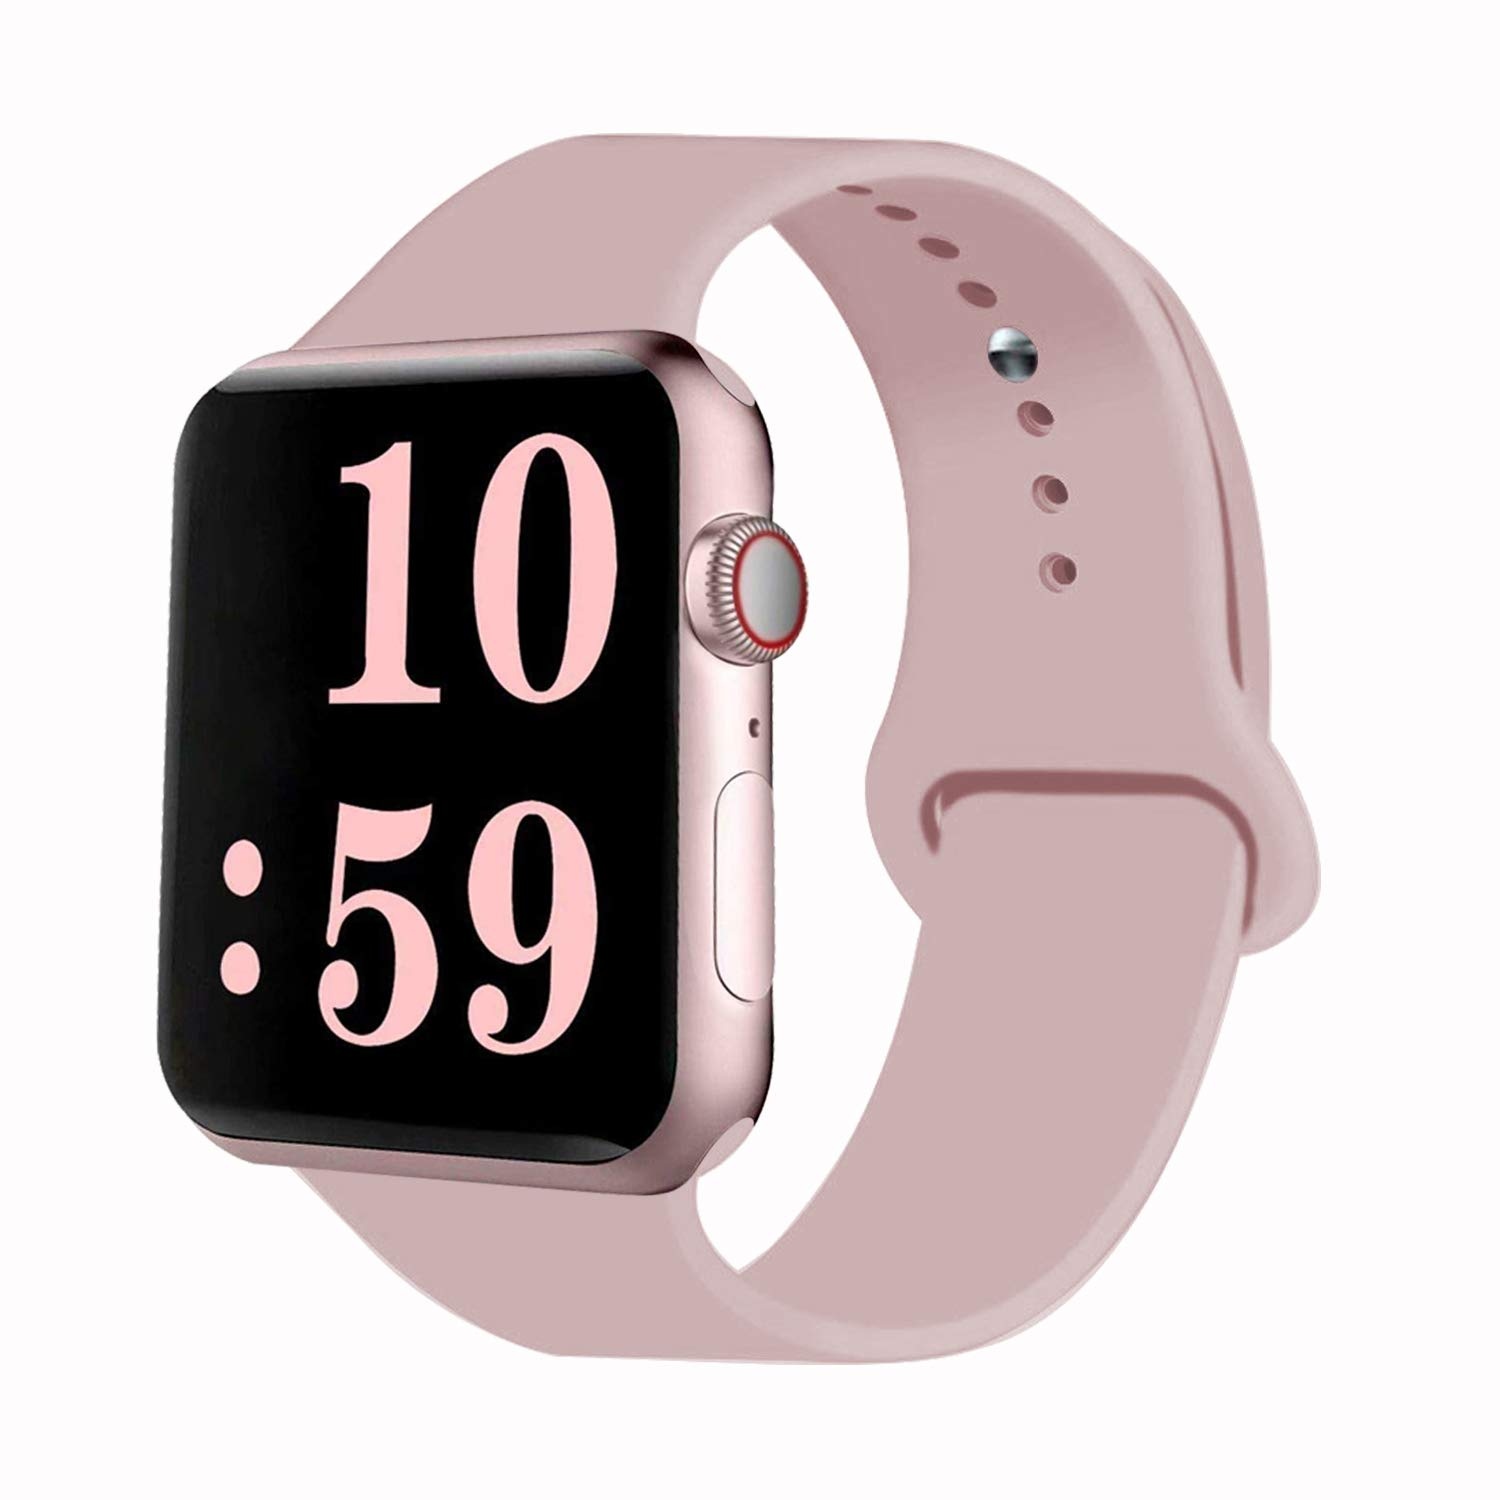 VATI Sport Band Compatible for Apple Watch Band 38mm 40mm, Soft Silicone Sport Strap Replacement Bands Compatible with 2019 Apple Watch Series 5, iWatch 4/3/2/1, 38MM 40MM S/M (Pink Sand)